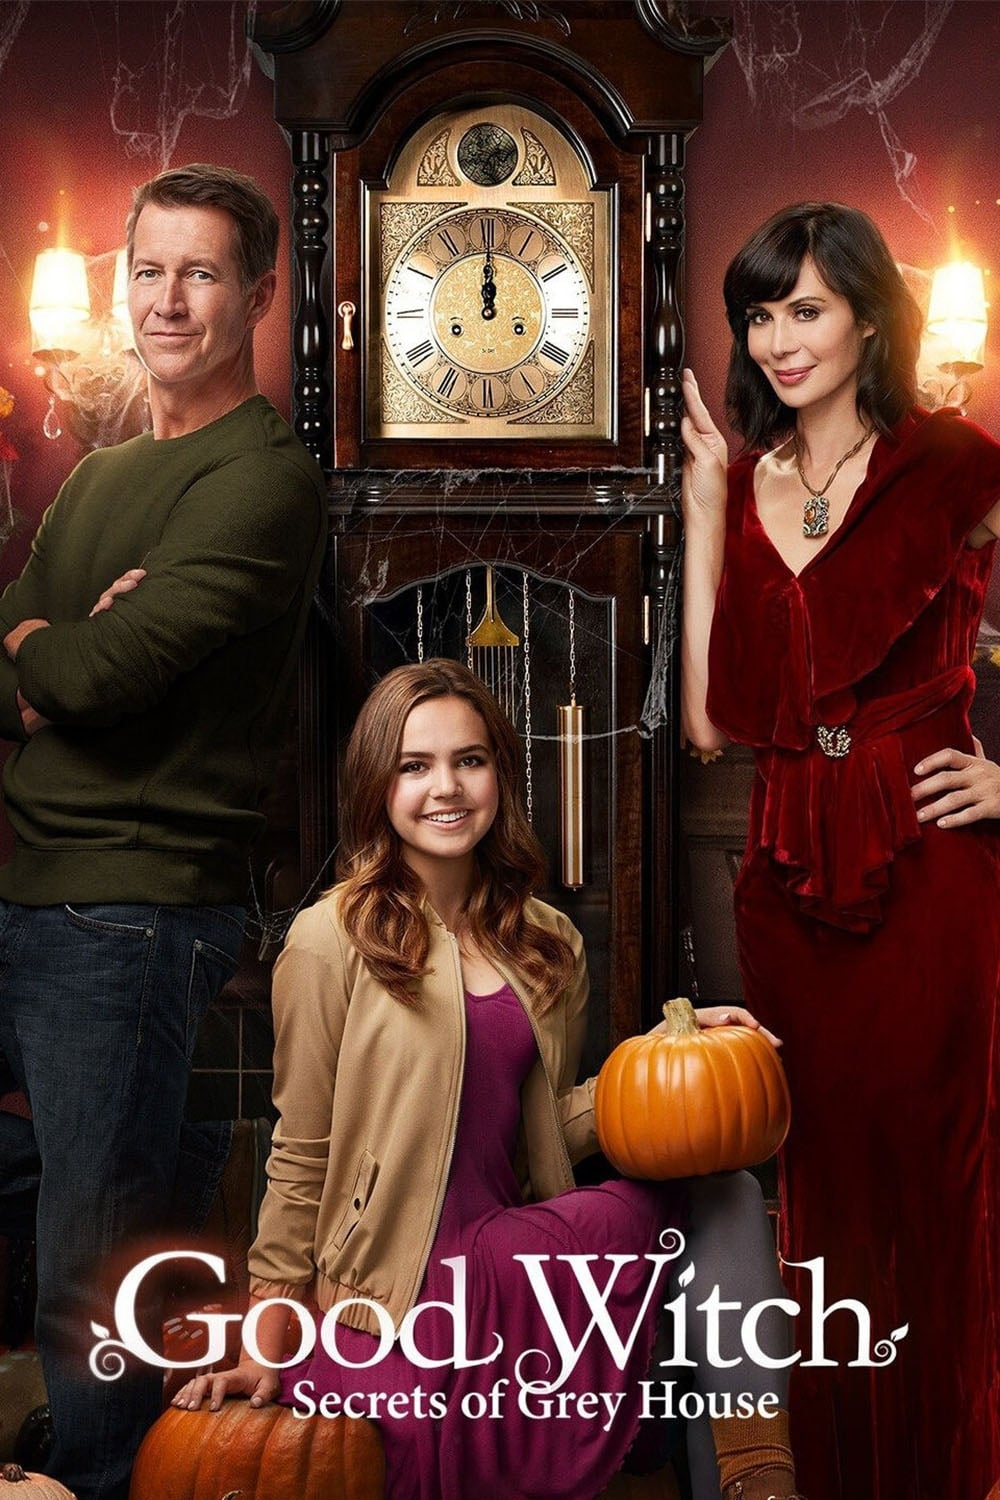 Good Witch: Secrets of Grey House (2016)